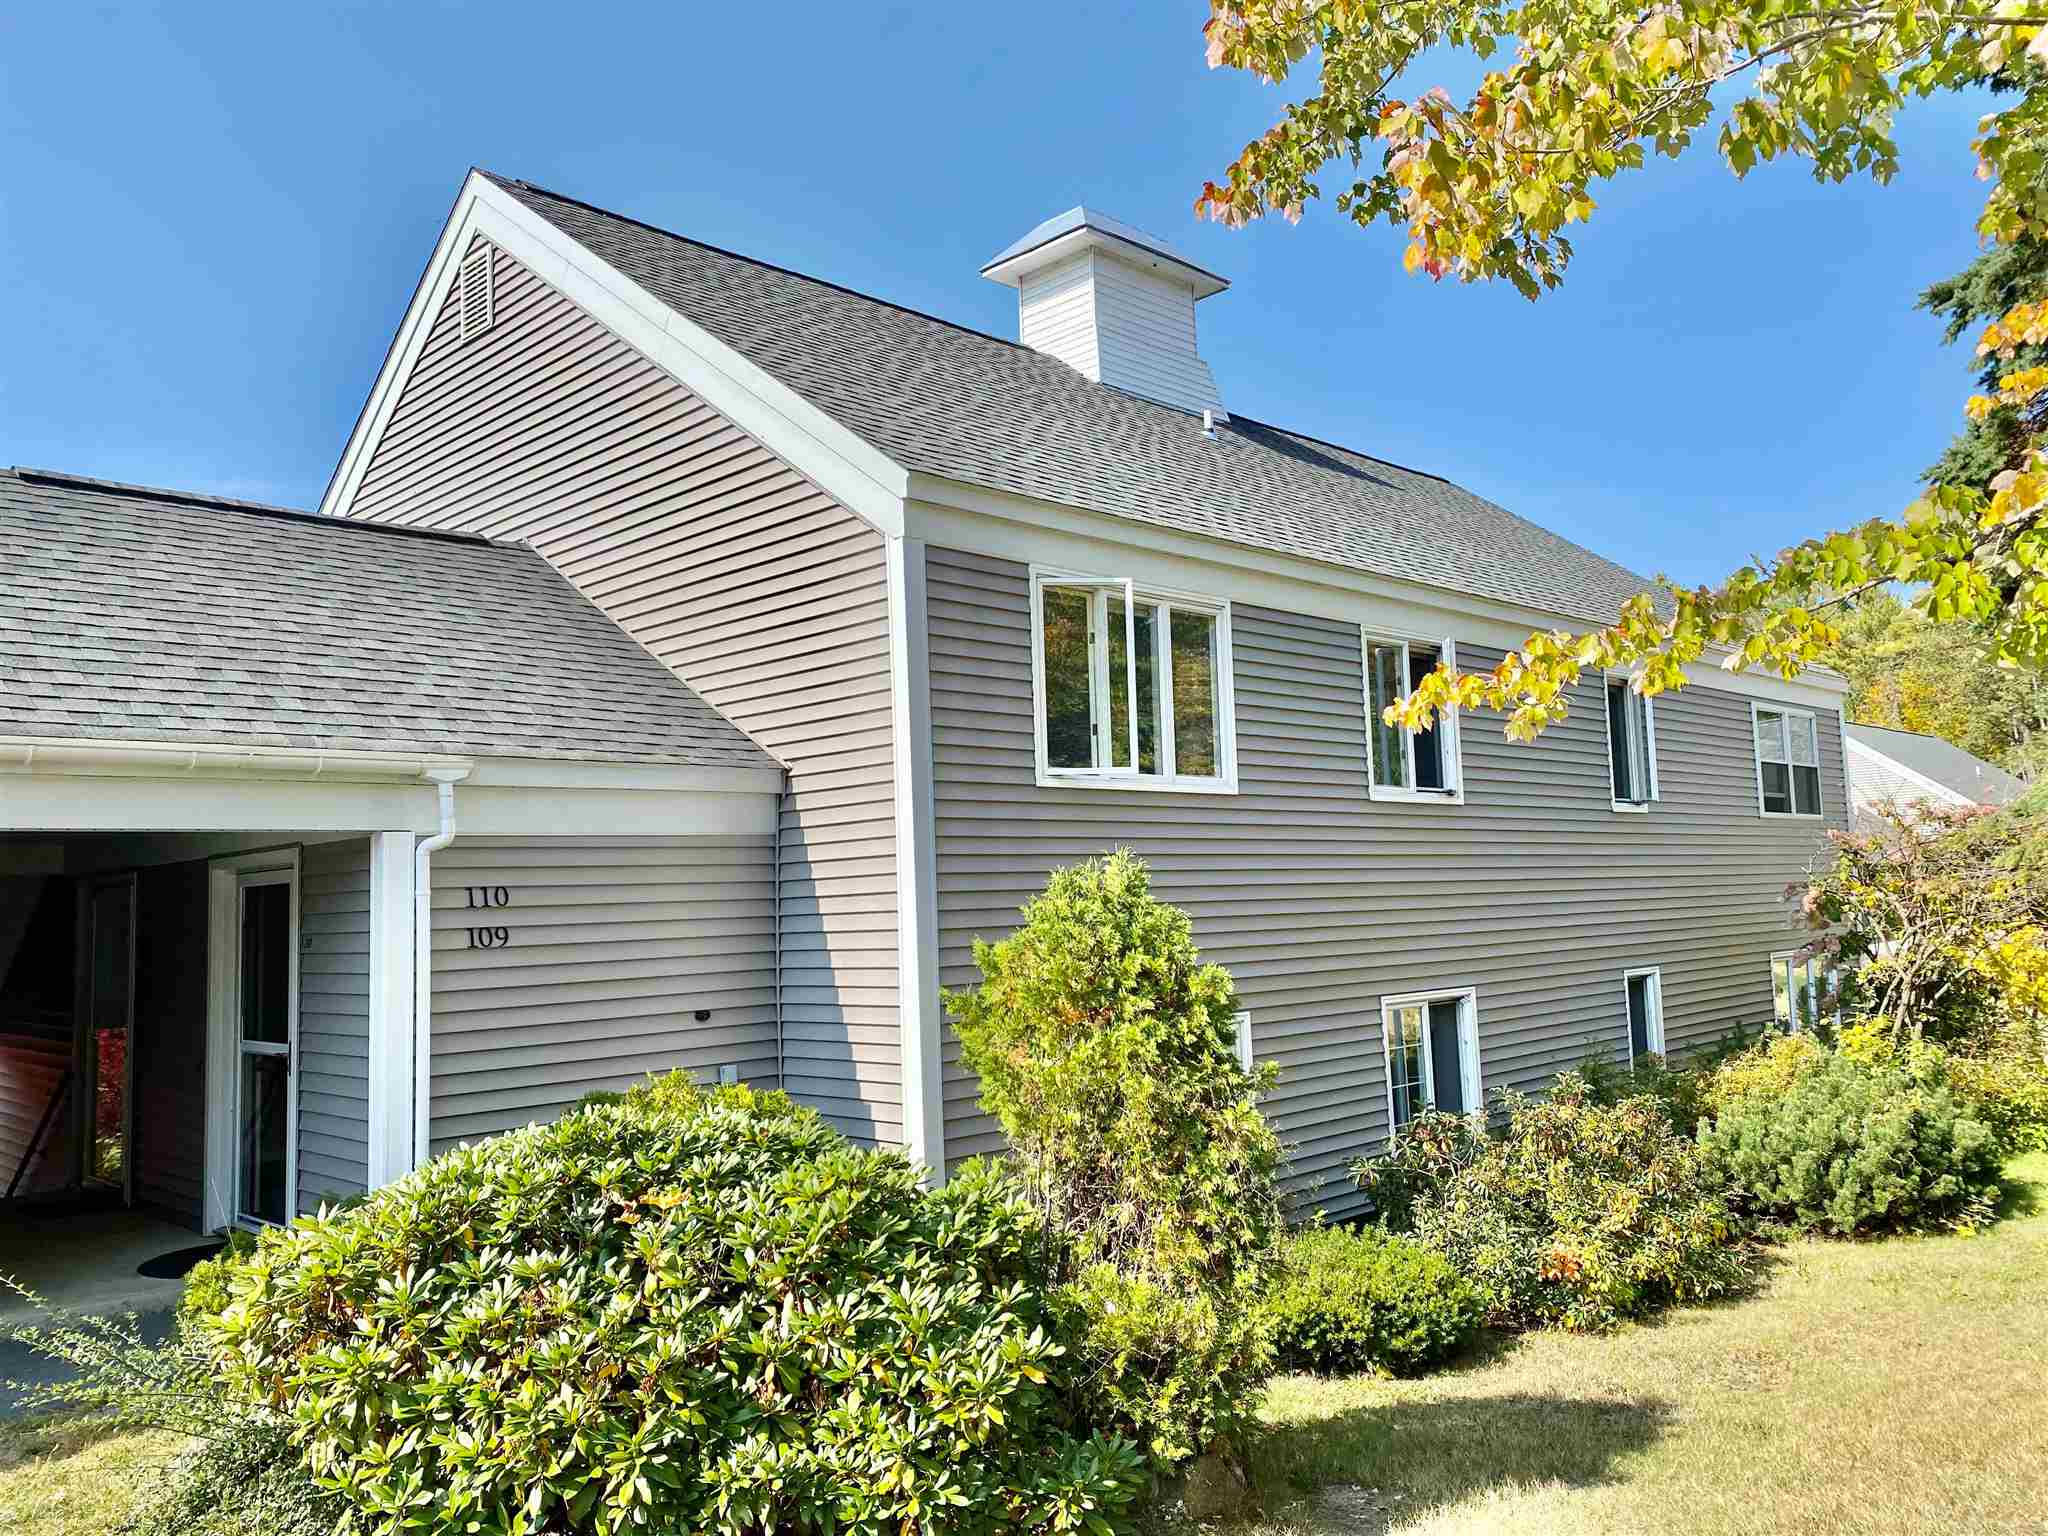 MLS 4831003: 110 Hilltop Place, New London NH